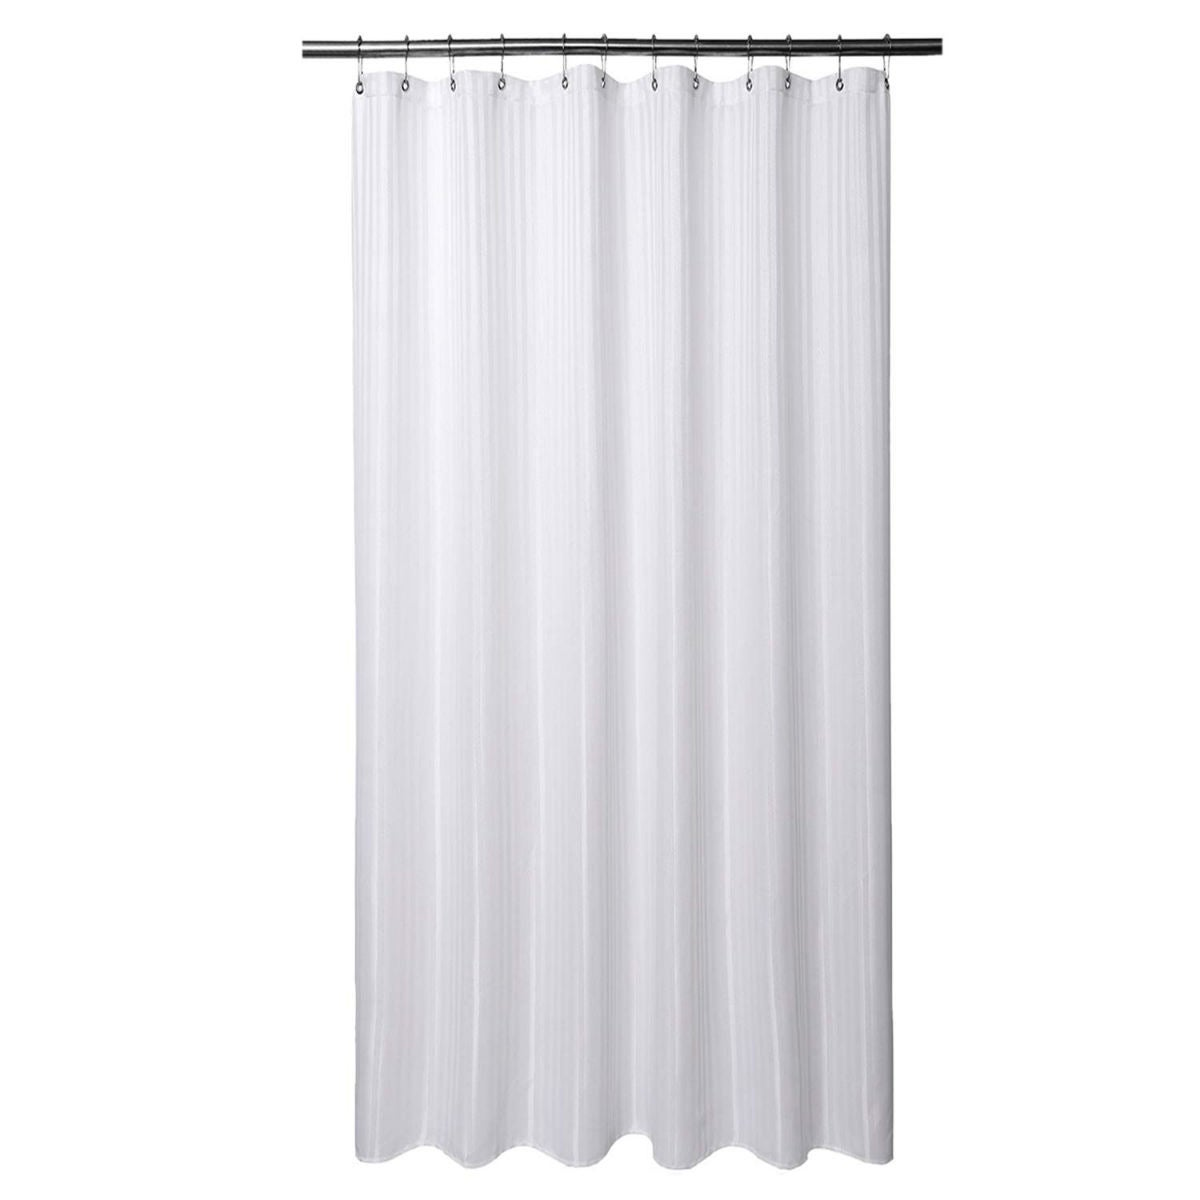 box medianet shower curtain clear view top